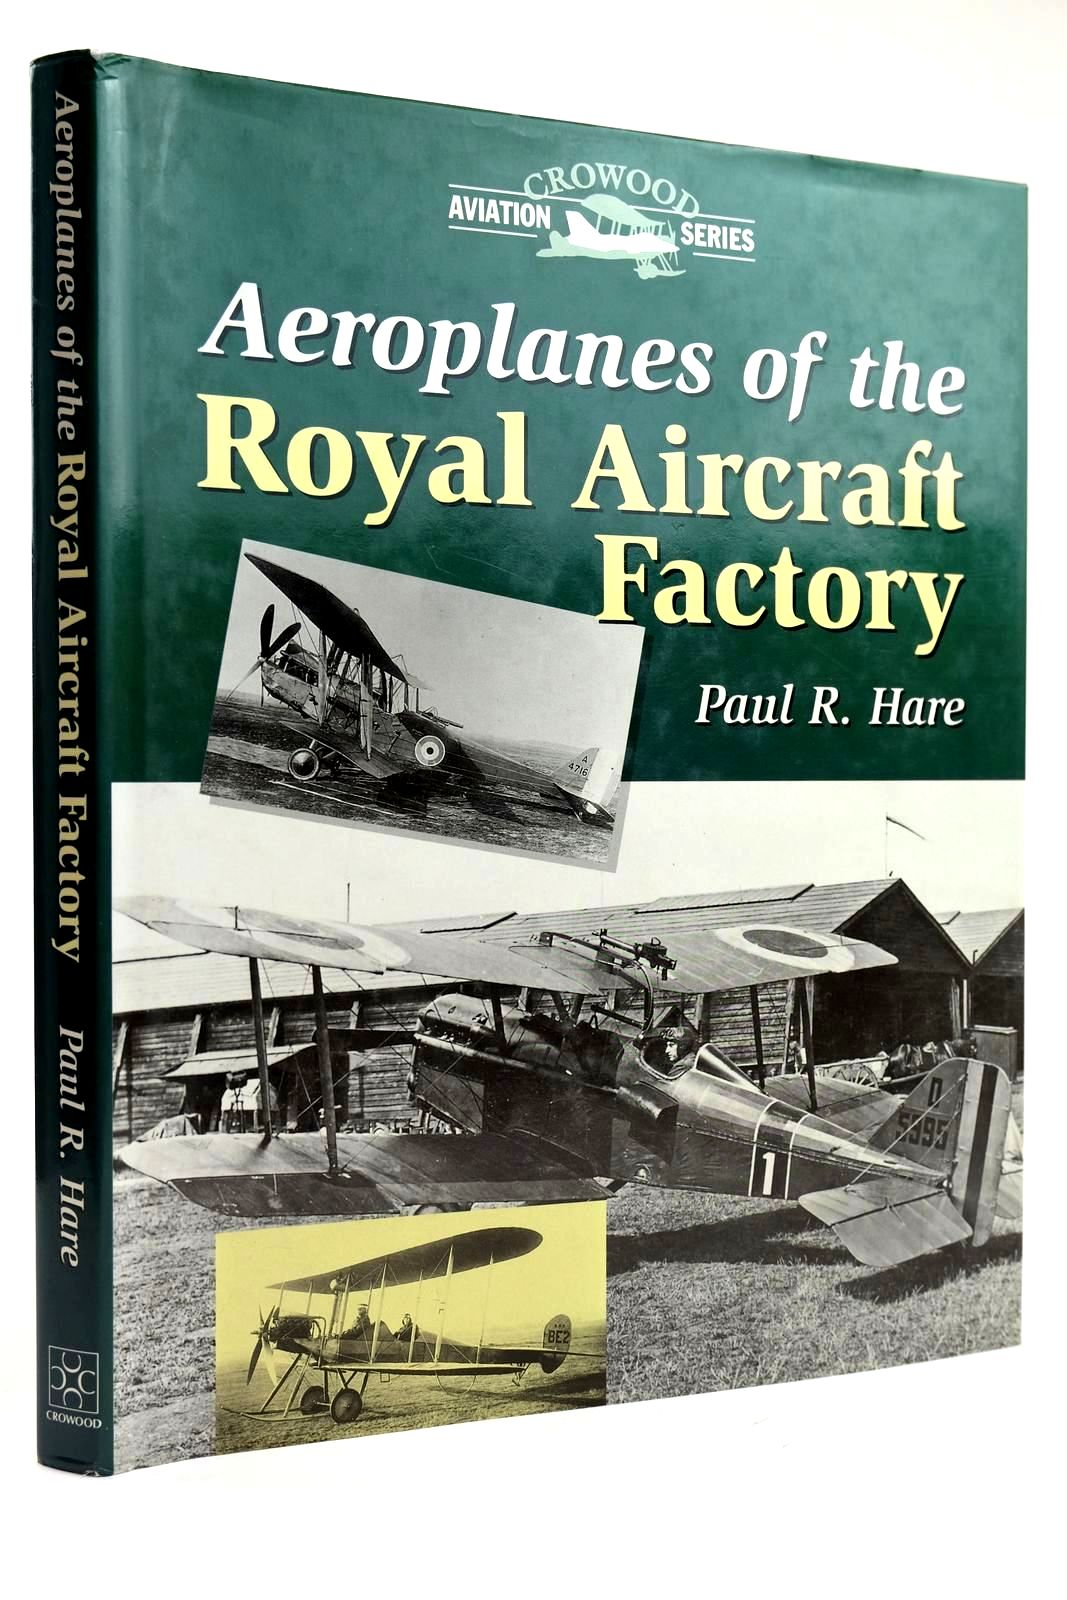 Photo of AEROPLANES OF THE ROYAL AIRCRAFT FACTORY written by Hare, Paul R. published by The Crowood Press (STOCK CODE: 2132029)  for sale by Stella & Rose's Books